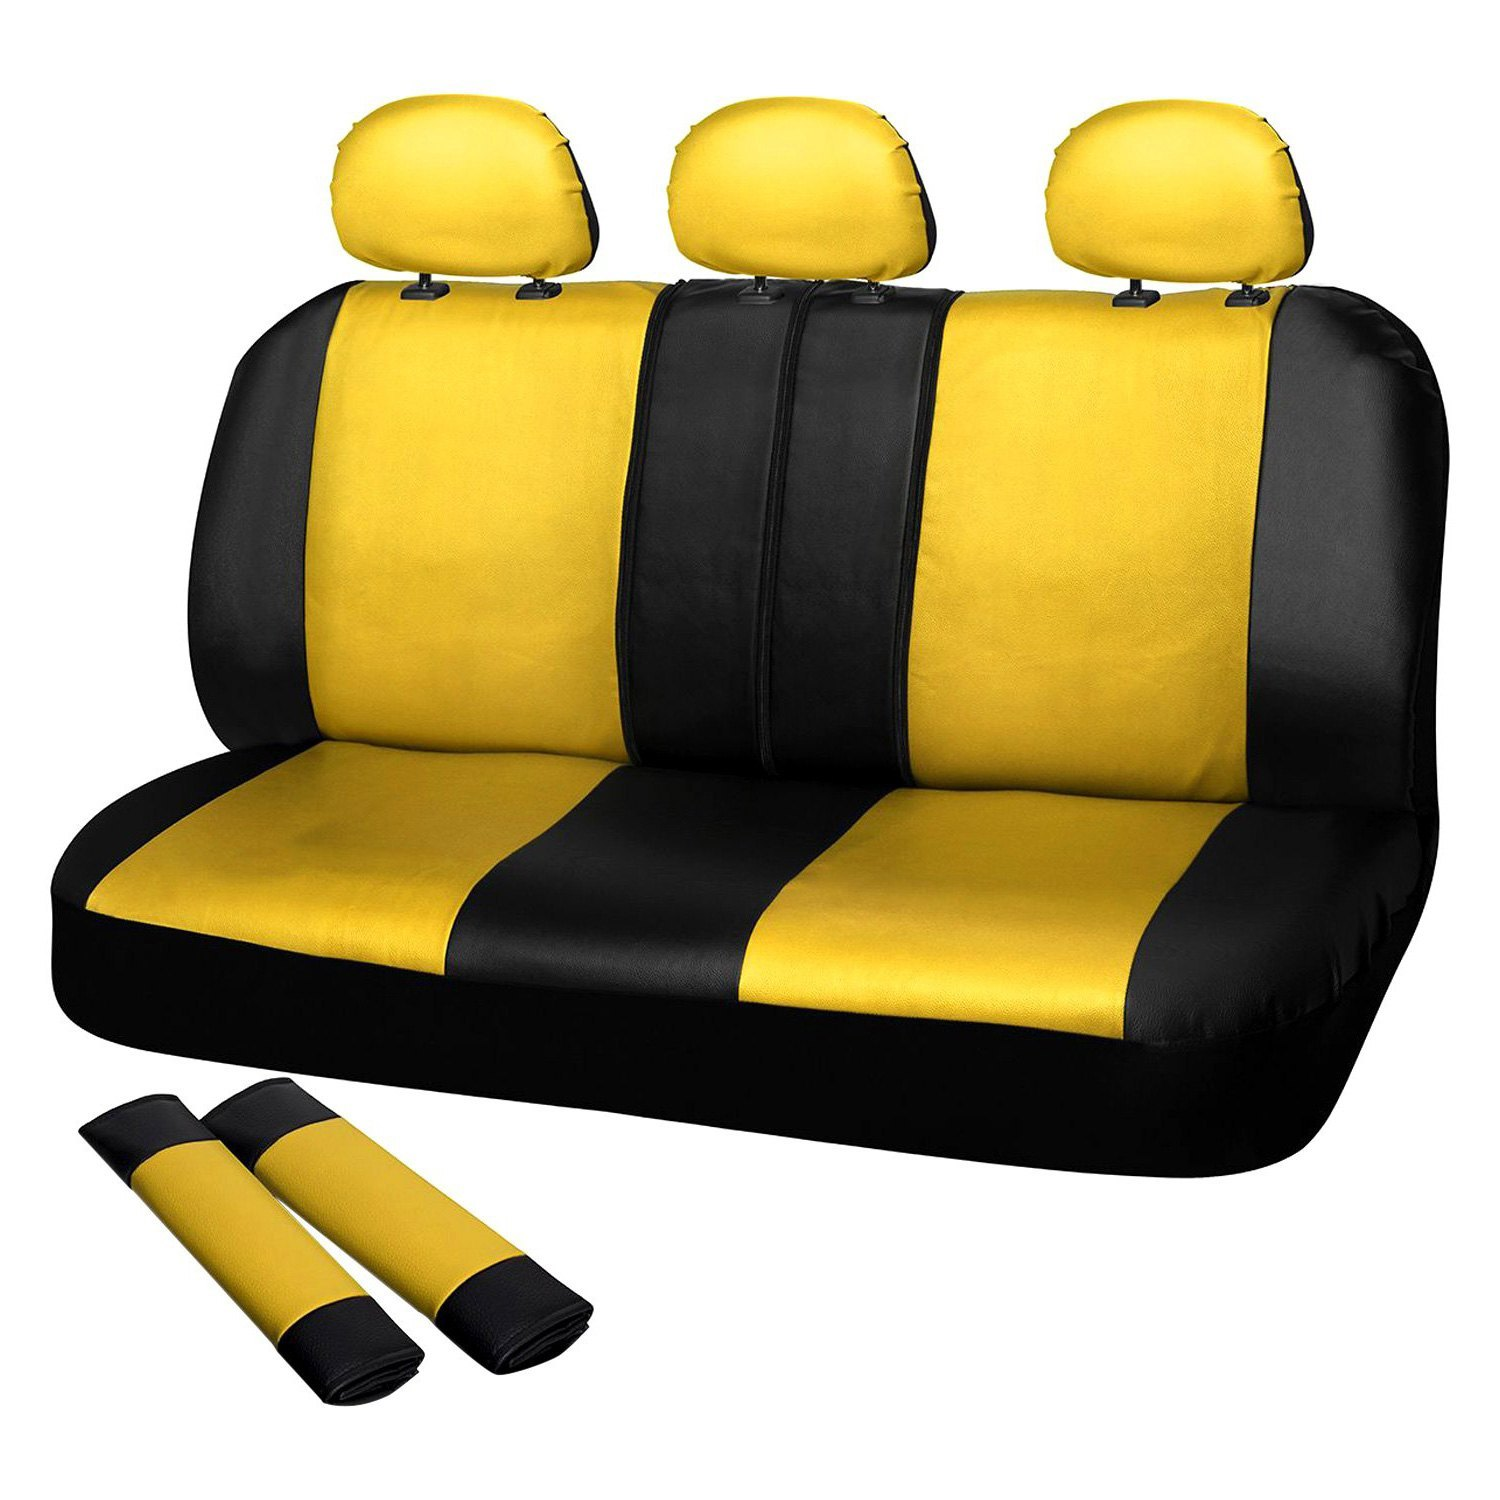 Prime Oxgord Scpu S2D Yw Faux Leather 2Nd Row Yellow Black Seat Cover Set Gamerscity Chair Design For Home Gamerscityorg